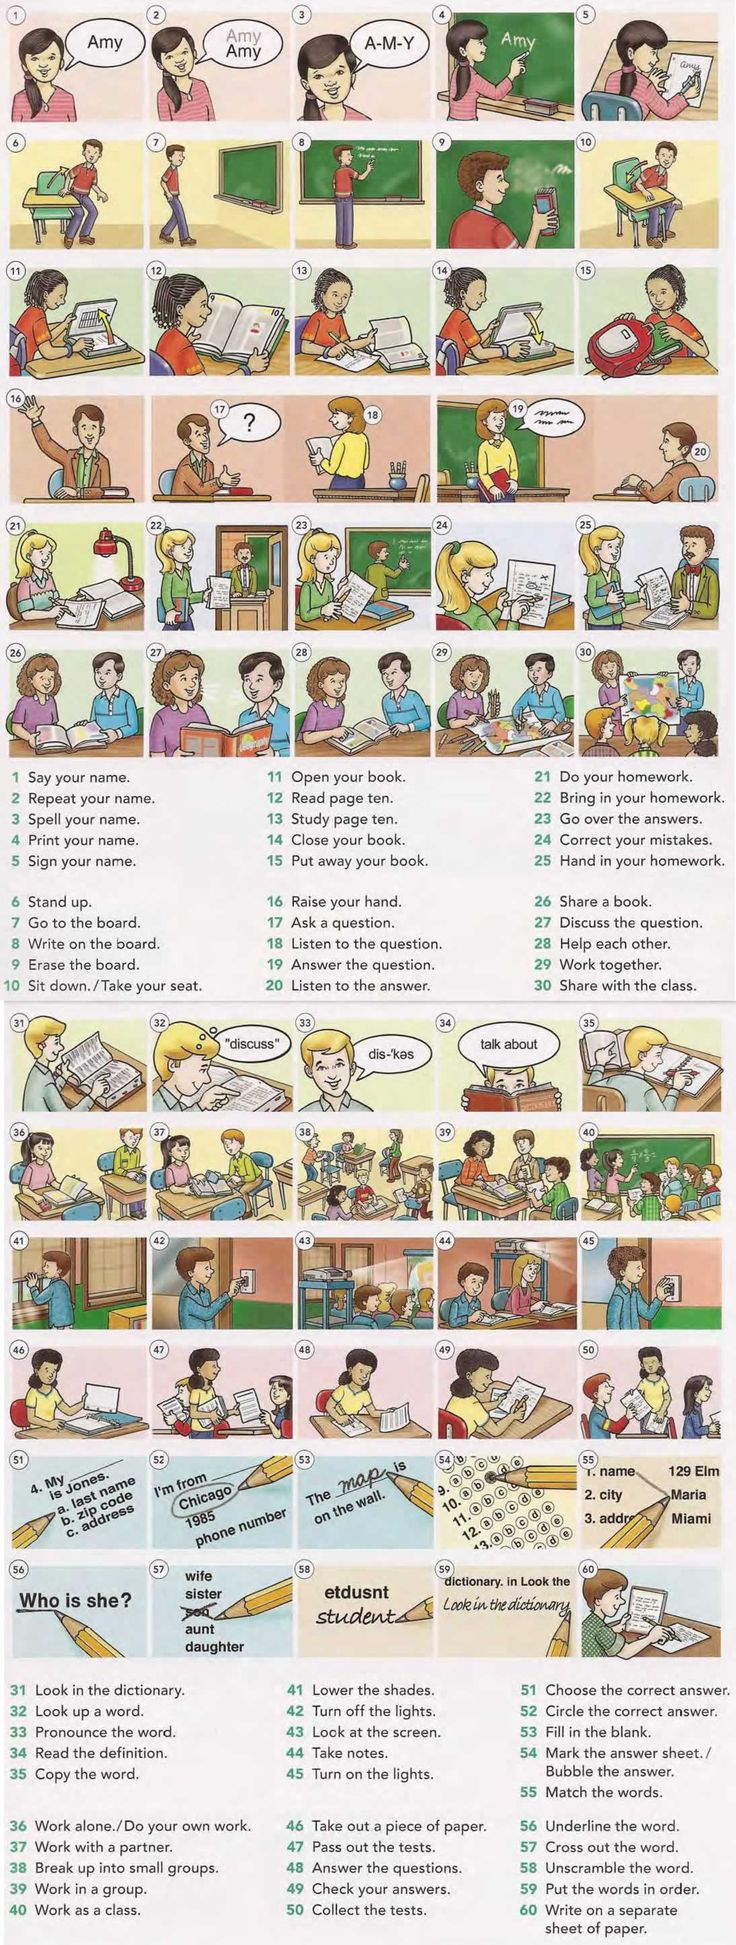 Learning English Vocabulary and Grammar|Classroom Commands for a Teacher. This could be a VERY useful infographic/picture dictionary for teachers working with newcomers and low English proficiency ELLs, particularly when they are new and first acclimating to class and learning school routines.